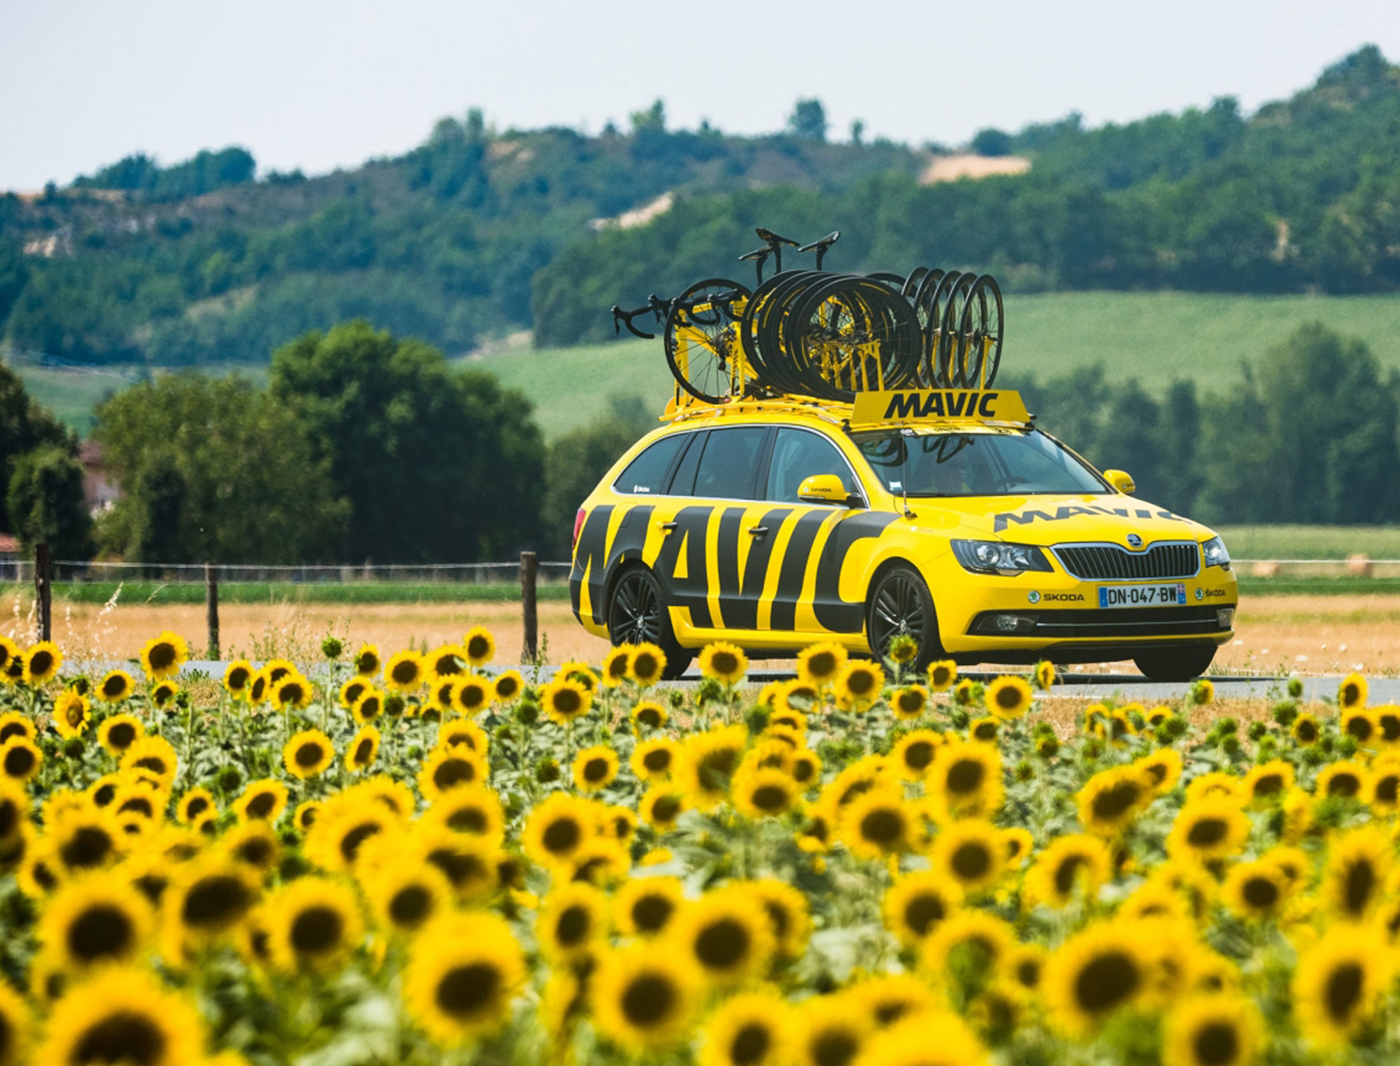 mavic neutral service car at the tour de france